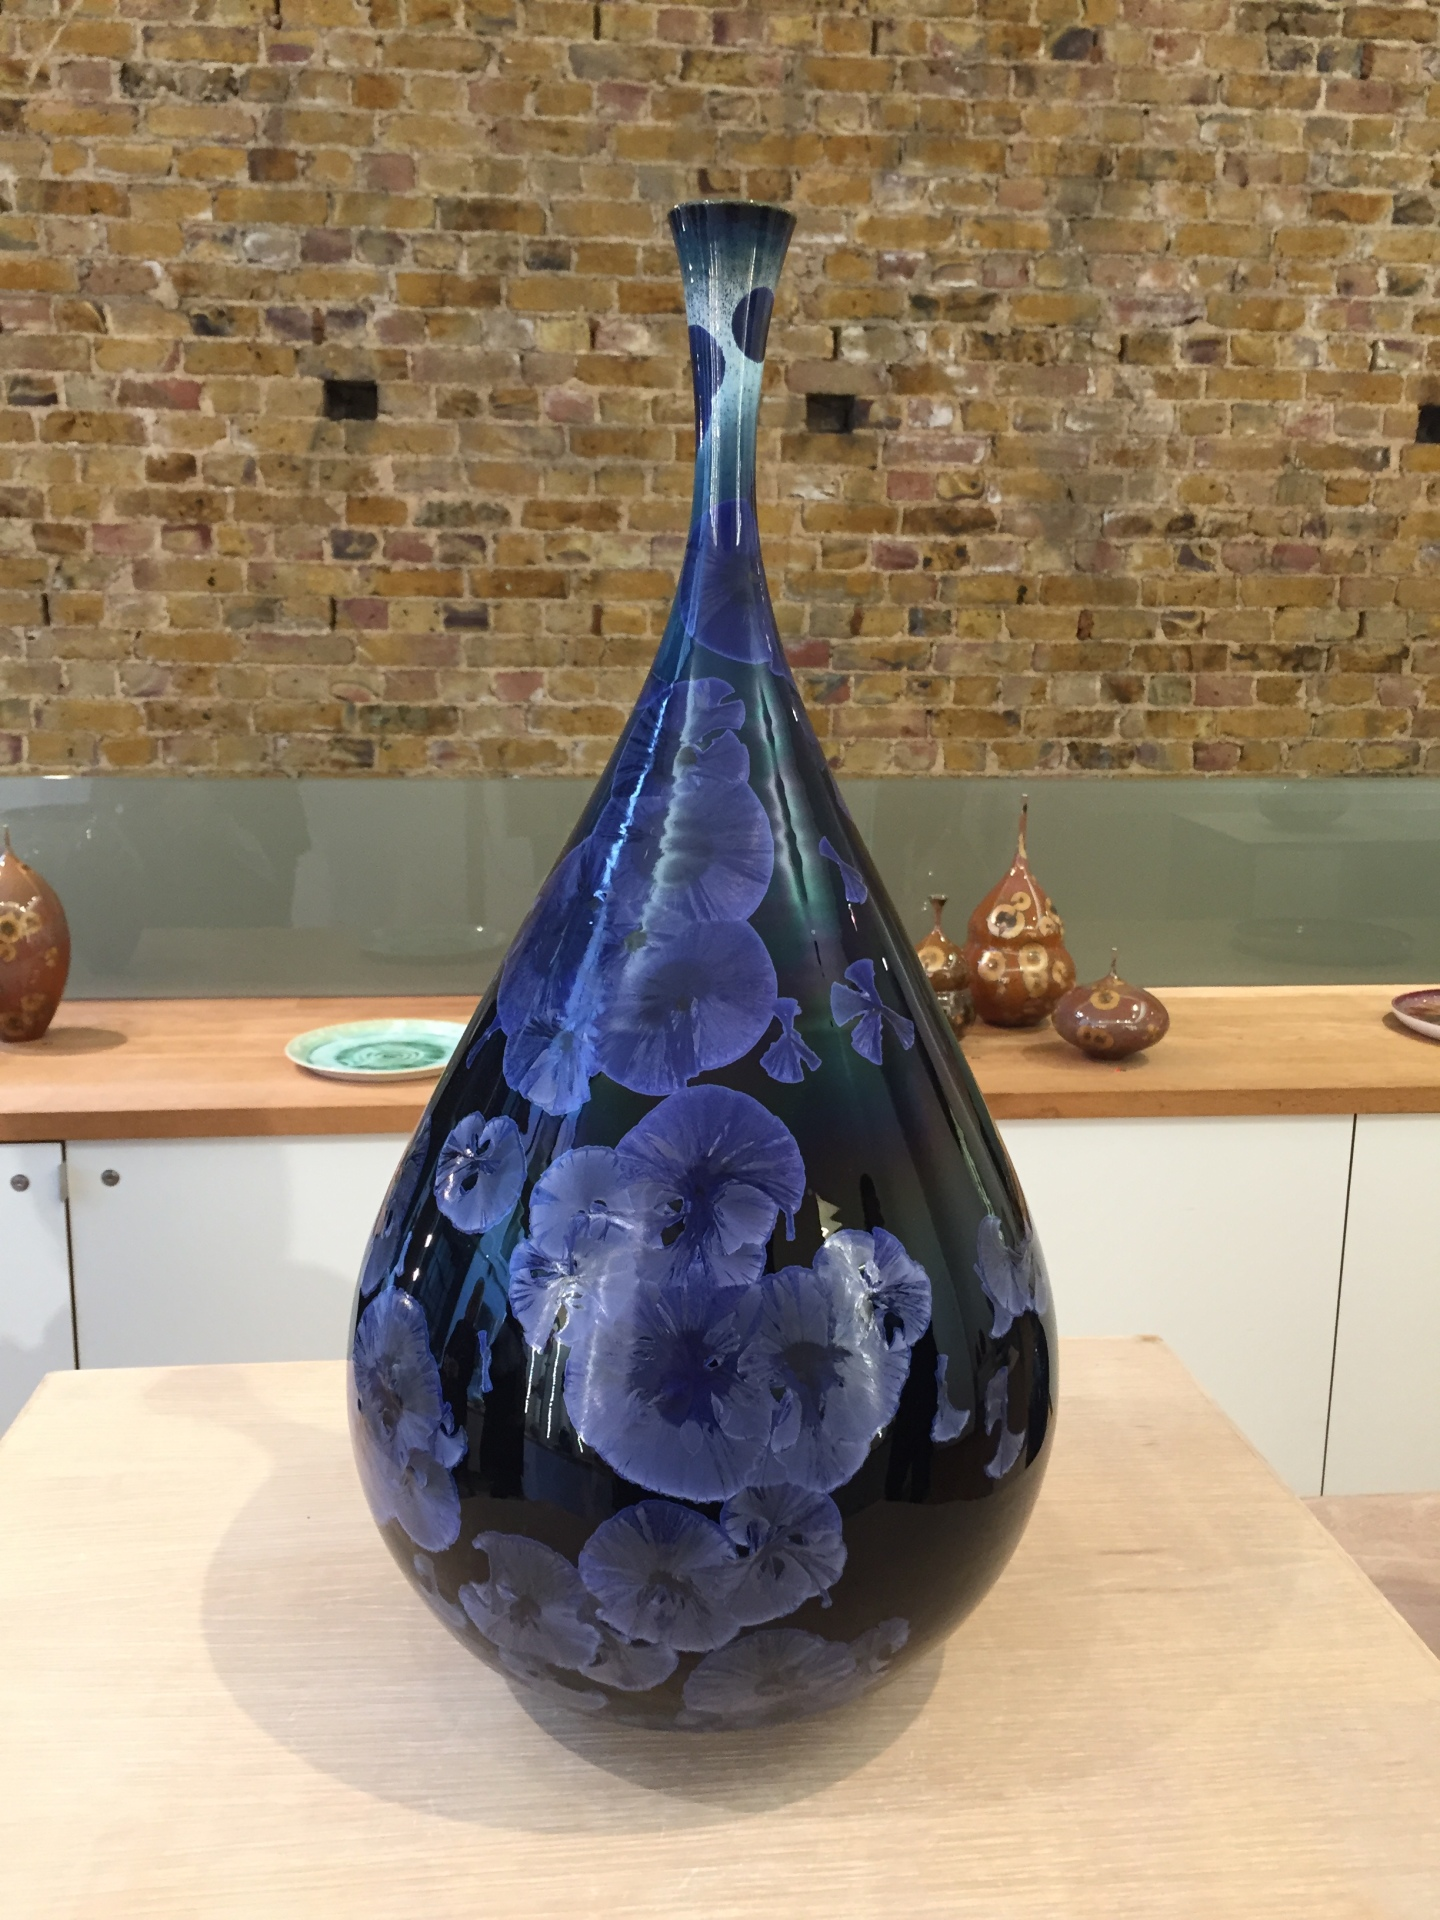 Matt Horne: Large Vase Vessel